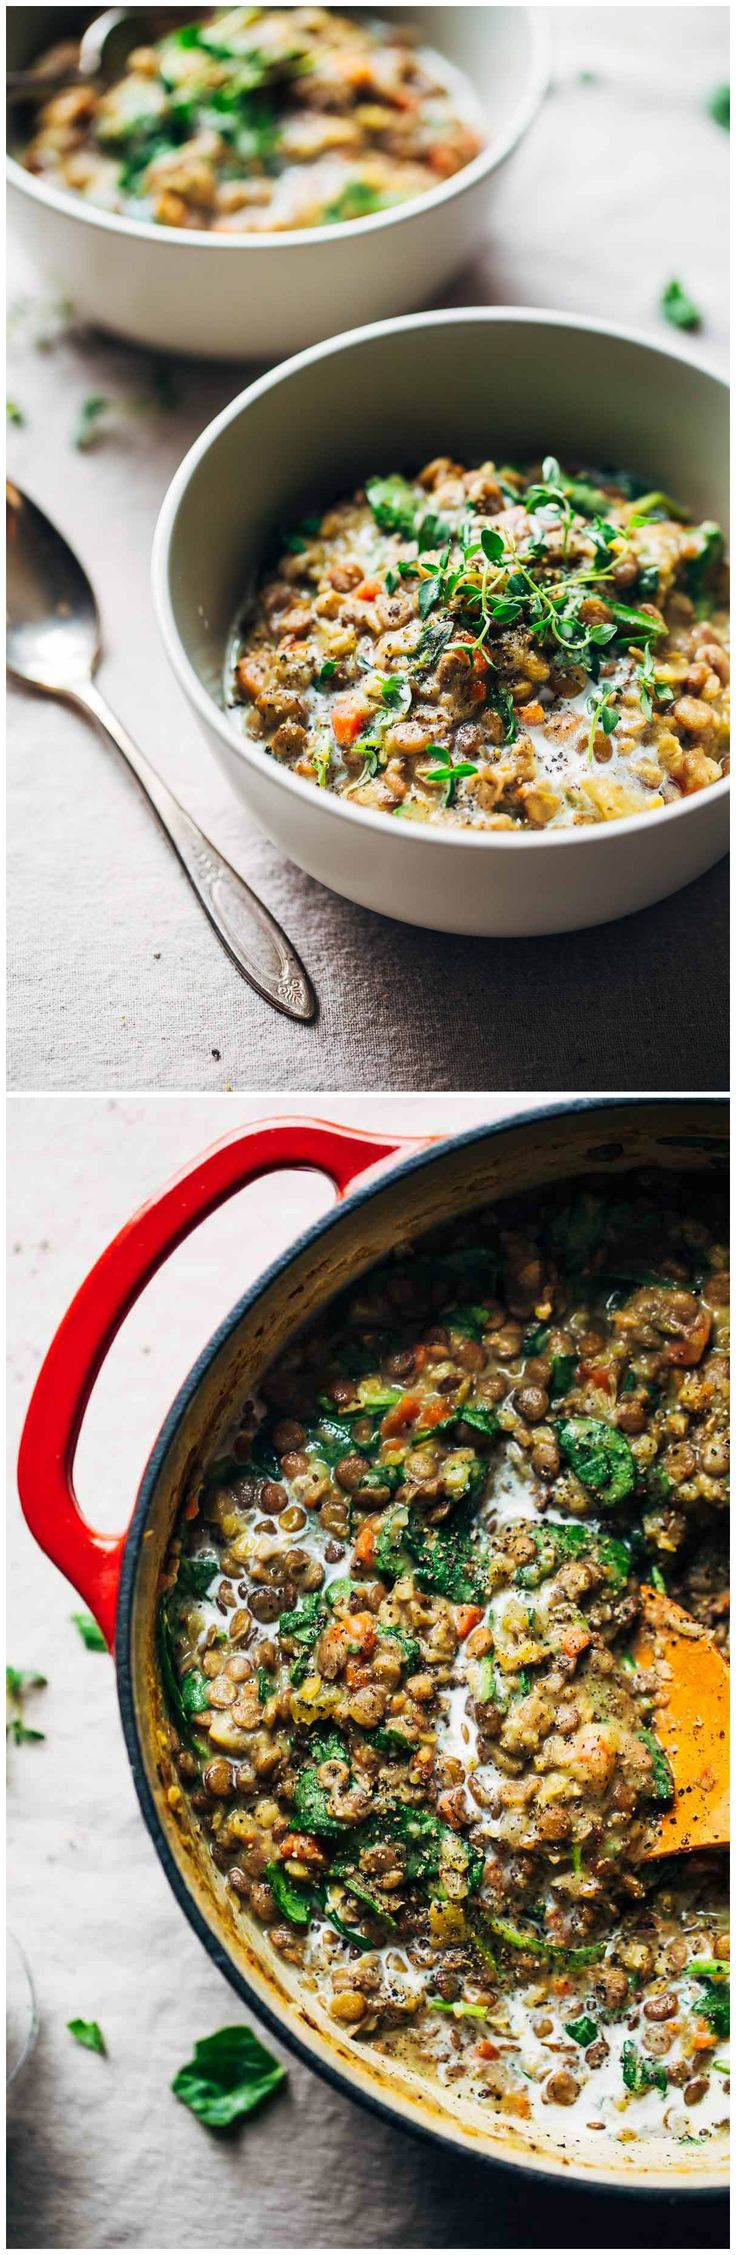 ONE-POT CREAMY SPINACH LENTILS